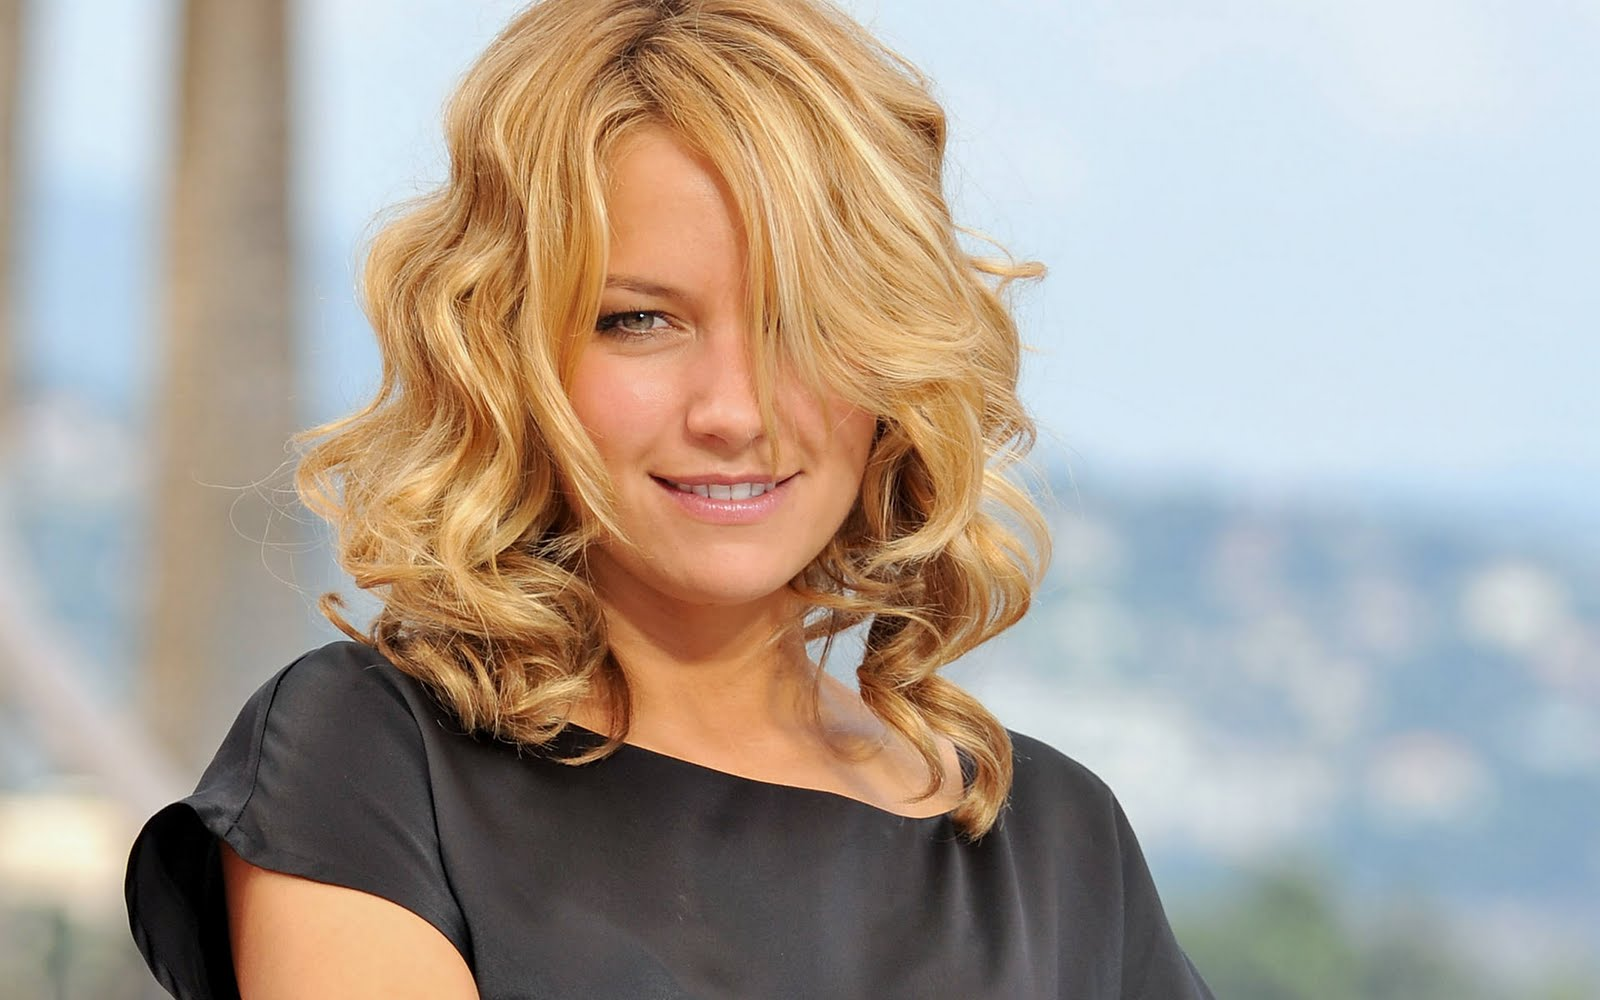 Becki newton Wallpaper hd wallpaper look beautiful wallpaper 267